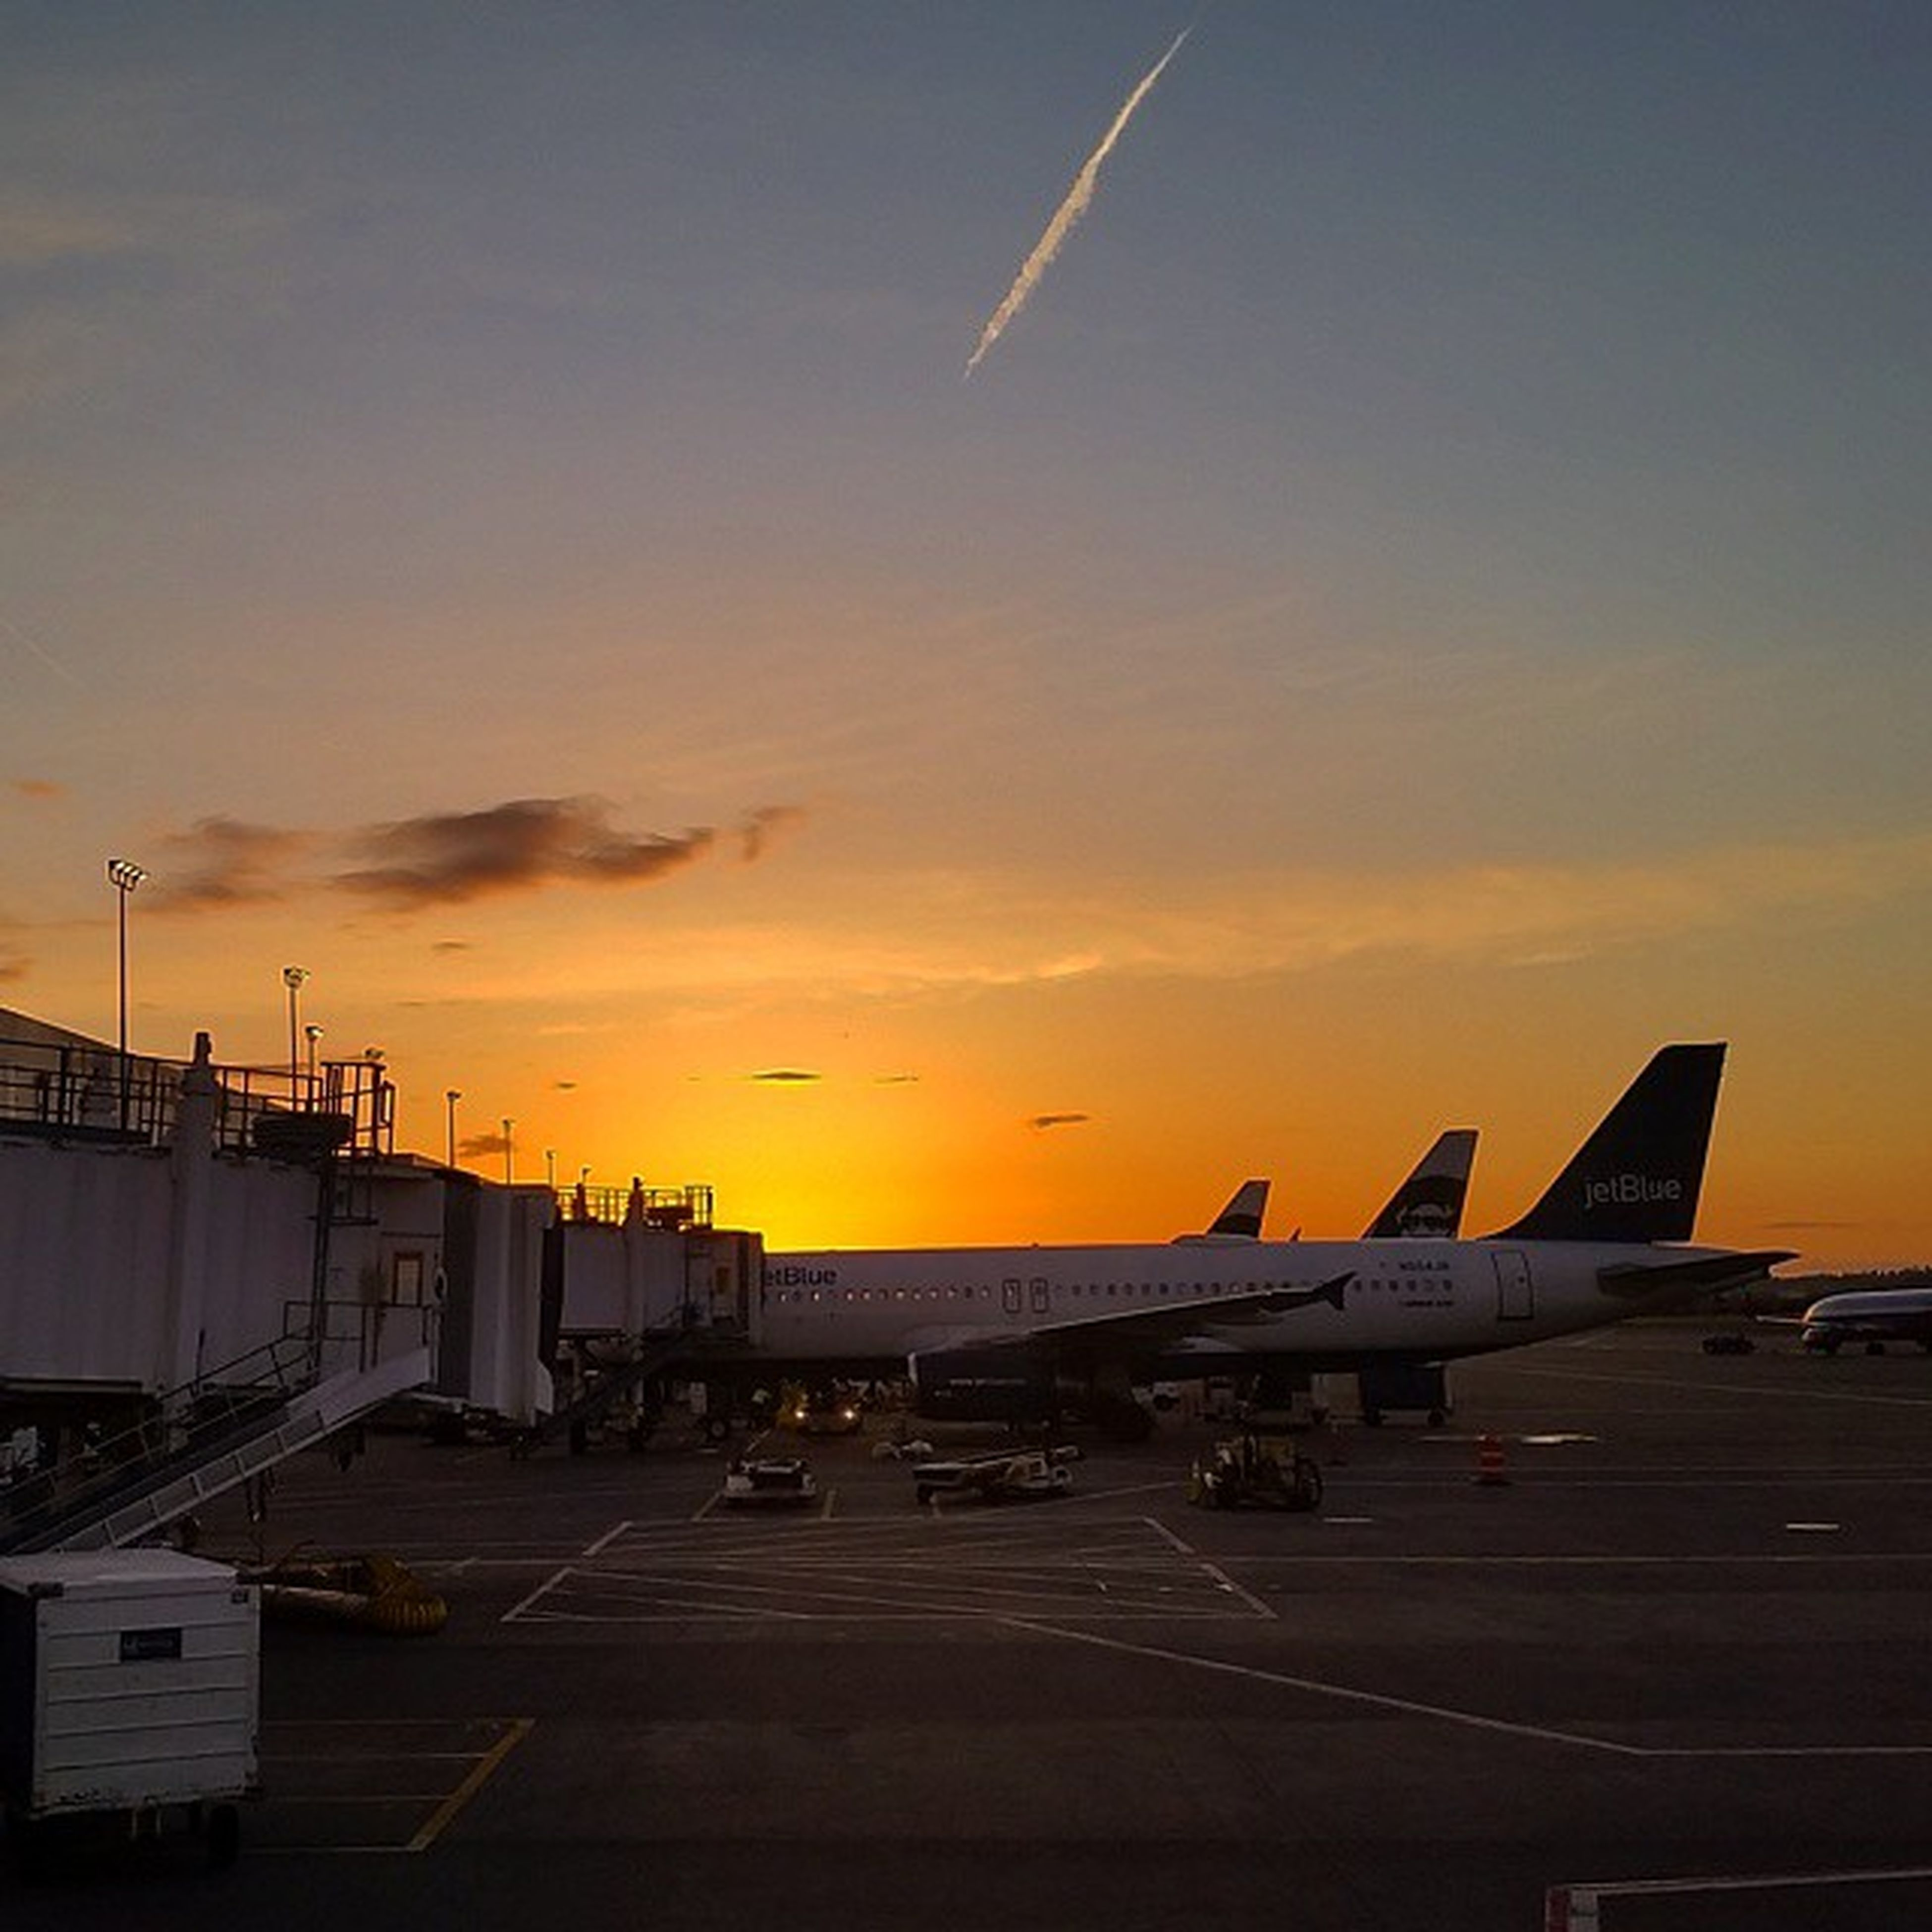 My seat selection based on watching the Sunset over the Pacificocean has turned into the view from TheTarmac OceanicFlight815 Travel Travellife